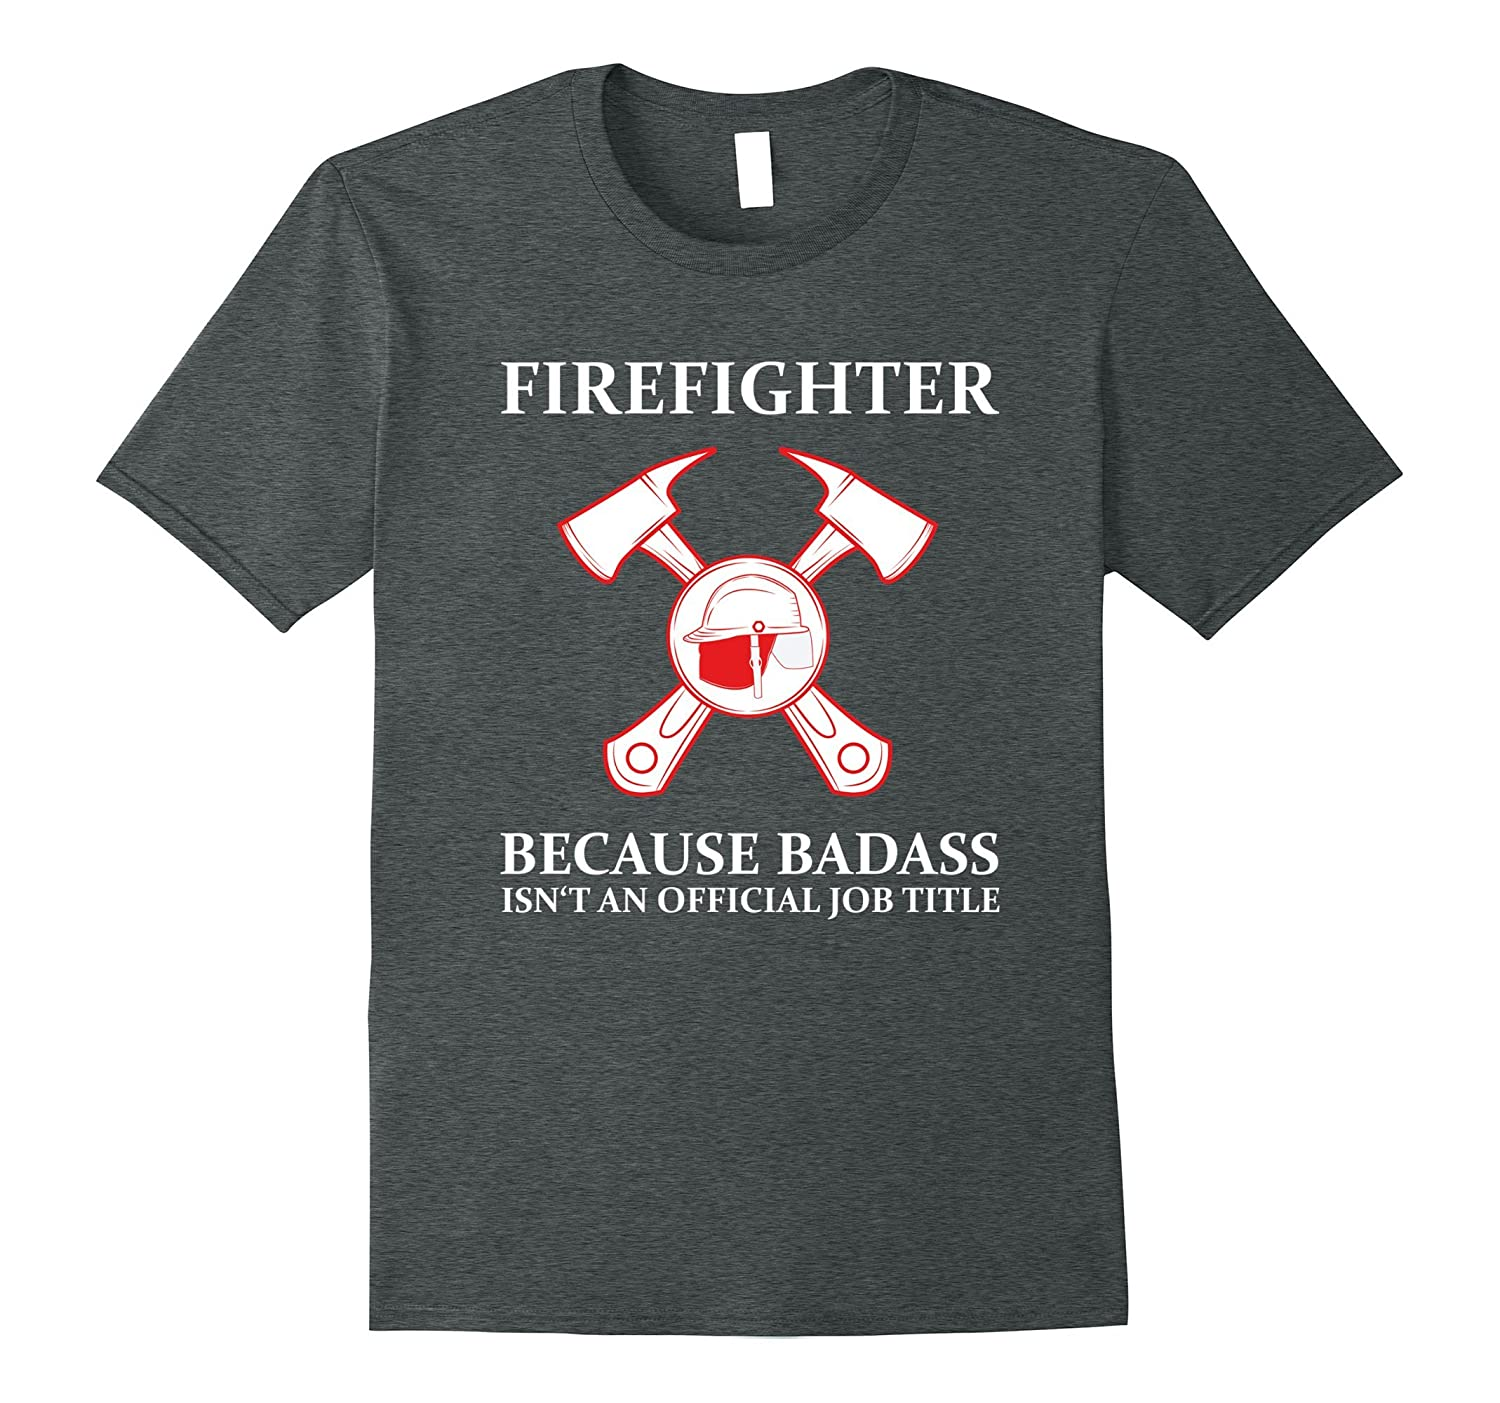 c14a57878 Funny Firefighter T-Shirt Badass Isnt An Official Job Title-TJ ...